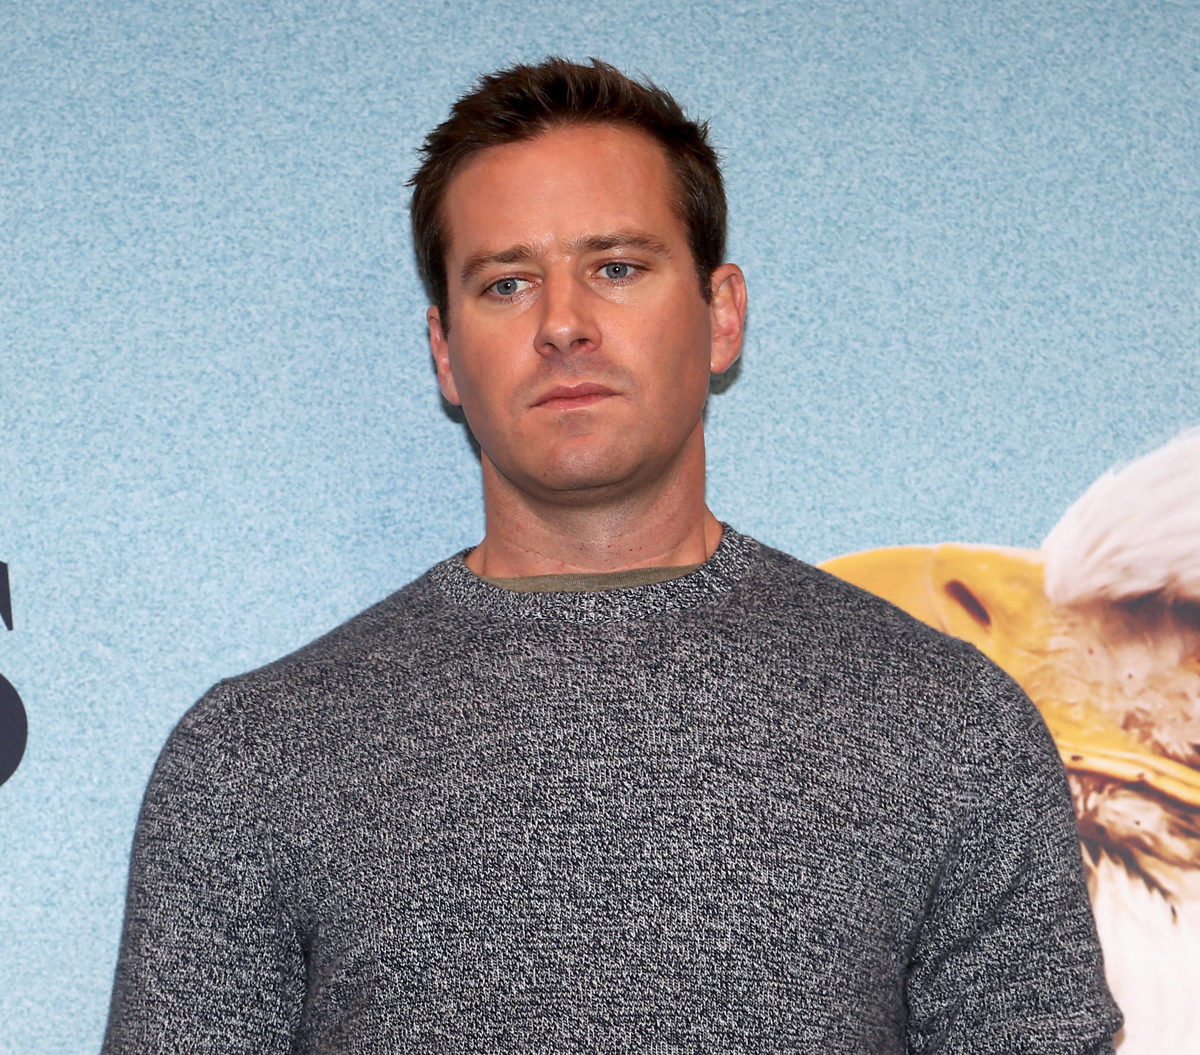 Armie Hammer Accused Of Rape, Under Police Investigation For Alleged Sexual Assault